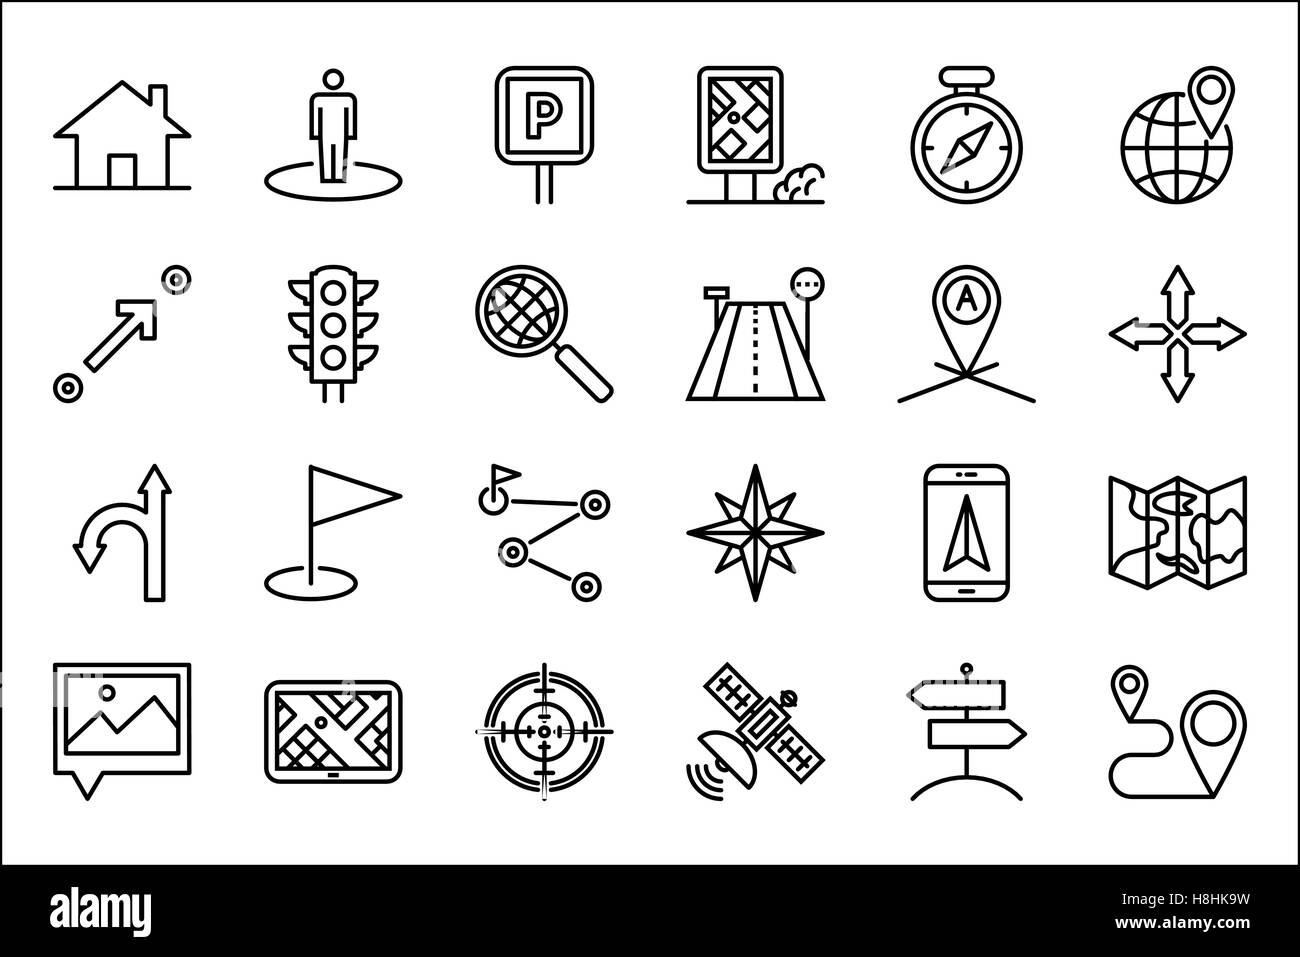 Navigation Thin Line Related Icons Set on White Background. Simple Mono Linear Pictogram Pack Stroke Vector Logo - Stock Image